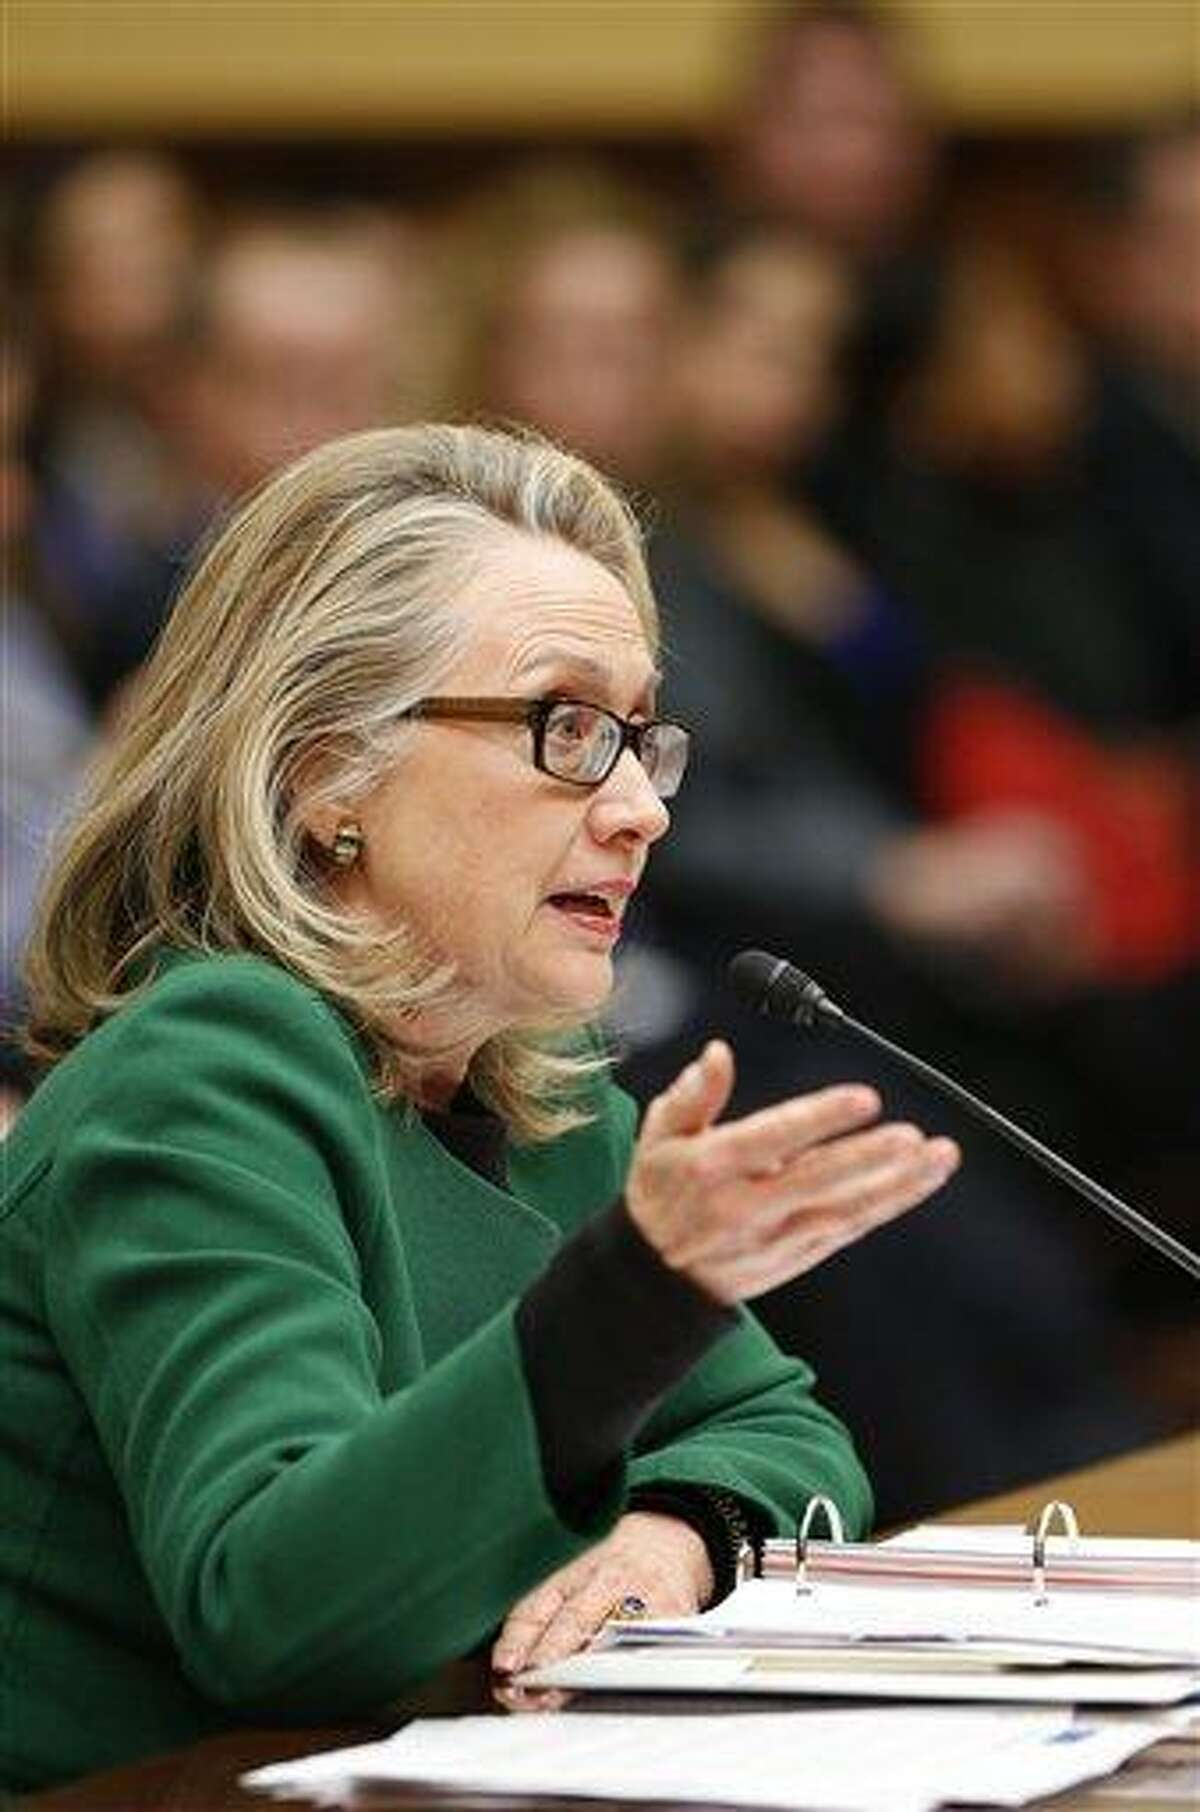 Secretary of State Hillary Rodham Clinton testifies on Capitol Hill in Washington, Wednesday, Jan. 23, 2013, before the House Foreign Affairs Committee hearing on the deadly September attack on the U.S. diplomatic mission in Benghazi, Libya, that killed Ambassador Chris Stevens and three other Americans. (AP Photo/J. Scott Applewhite)